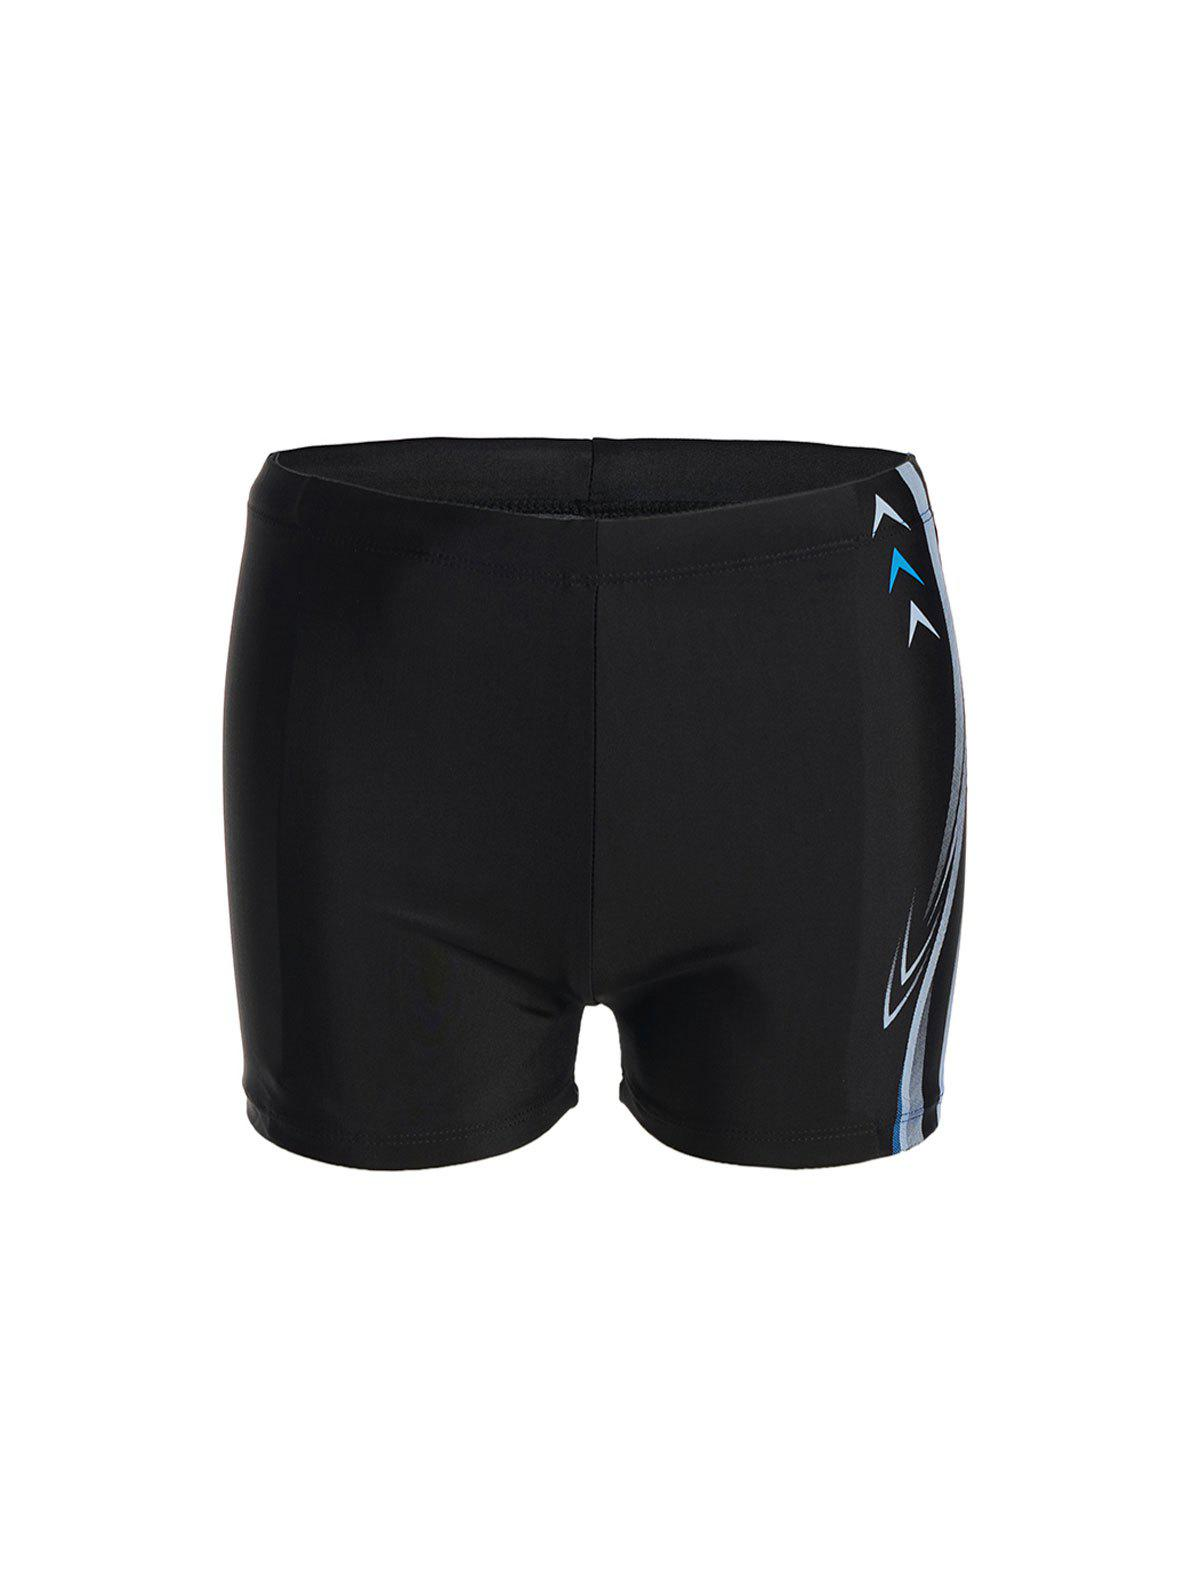 Fashion Arrow and Letter Print Waterproof Quick-Dry Men's Lace-Up Polyester+Spandex Boxers Swimming Trunks - BLACK 3XL